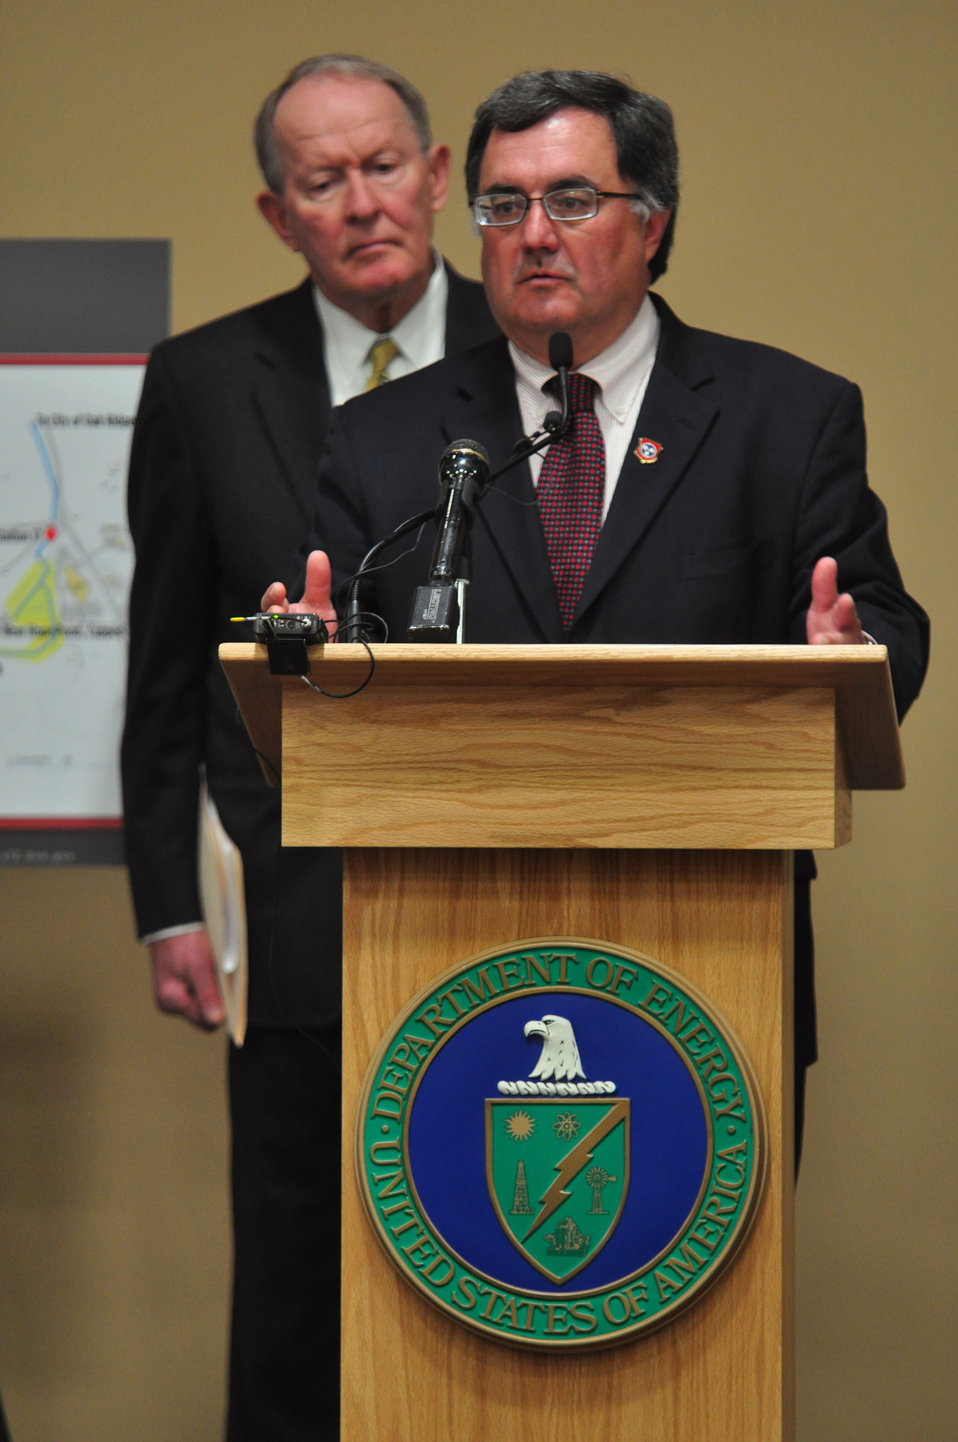 Mercury Cleanup Press Conference Y-12 Oak Ridge Speaking Robert Martineau Tennessee Department of Environment and Conservation Commissioner with U.S. Sen. Lamar Alexander (R-Tenn.) looking on